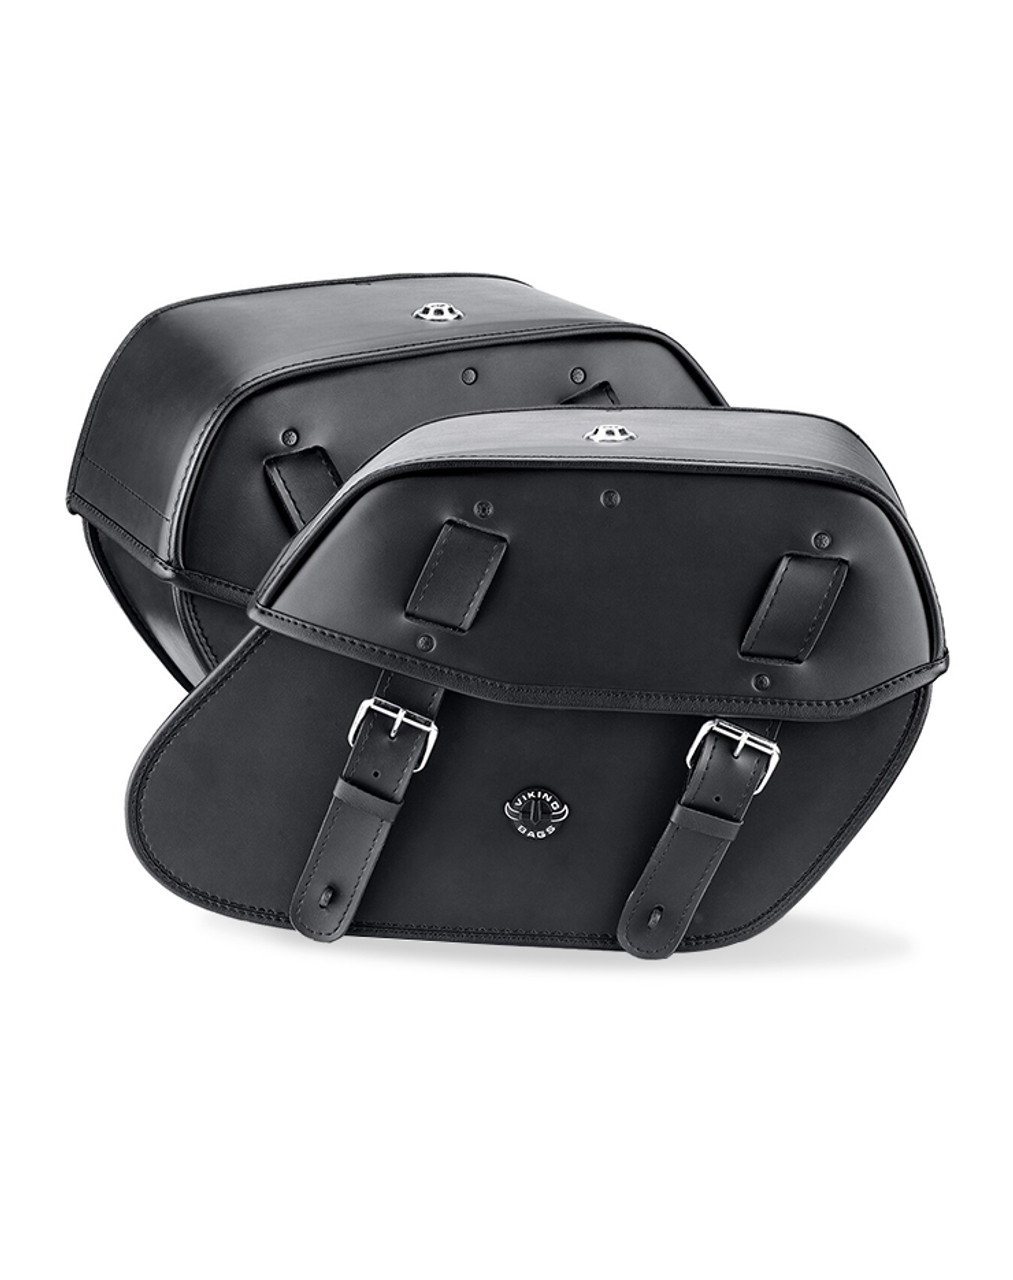 Indian Chief Standard Viking Odin Large Motorcycle Saddlebags Both Bags View